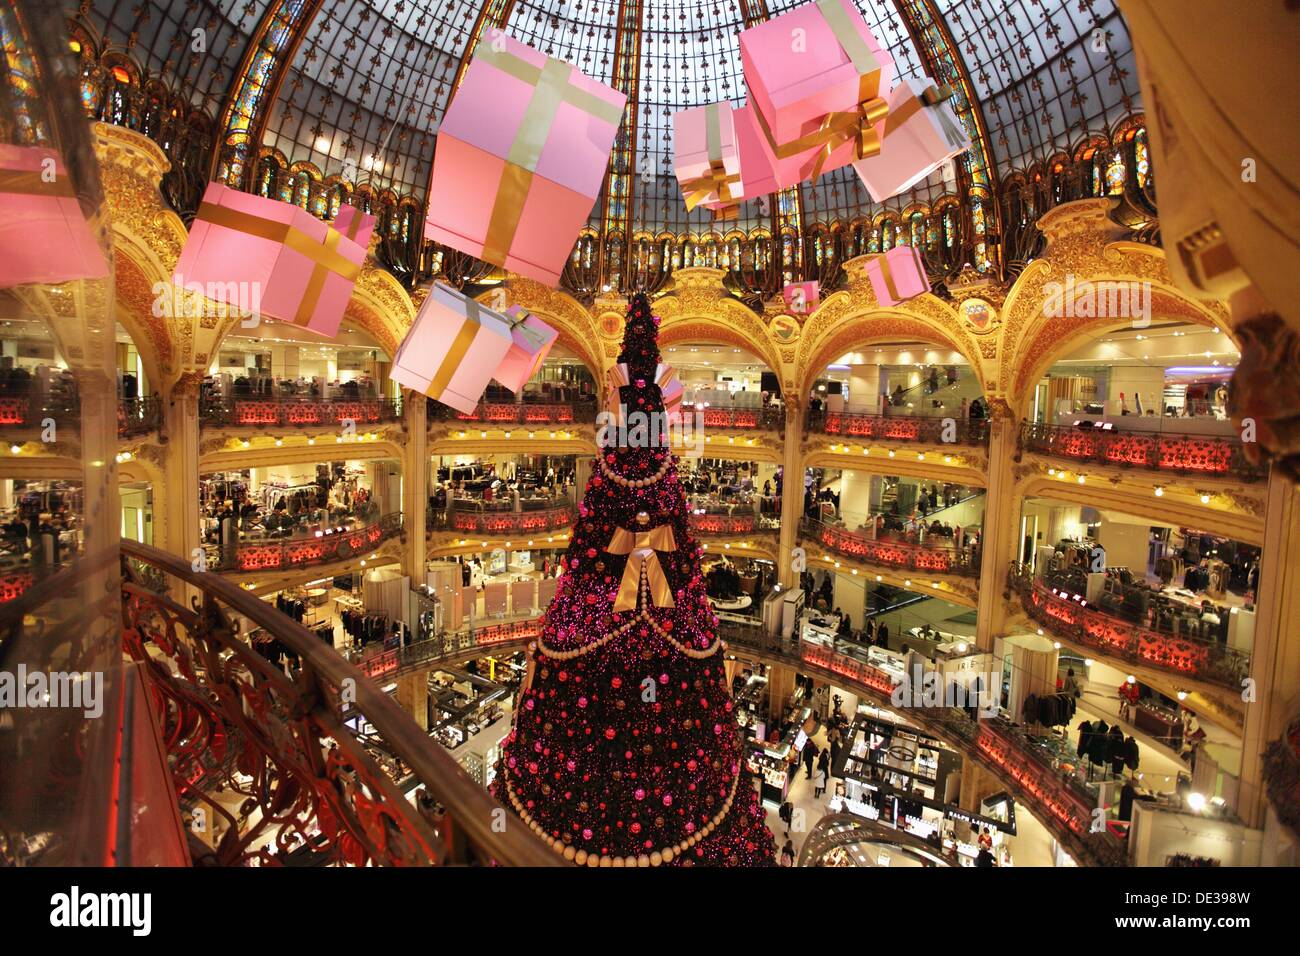 Christmas decorations in galeries lafayette department for The christmas store